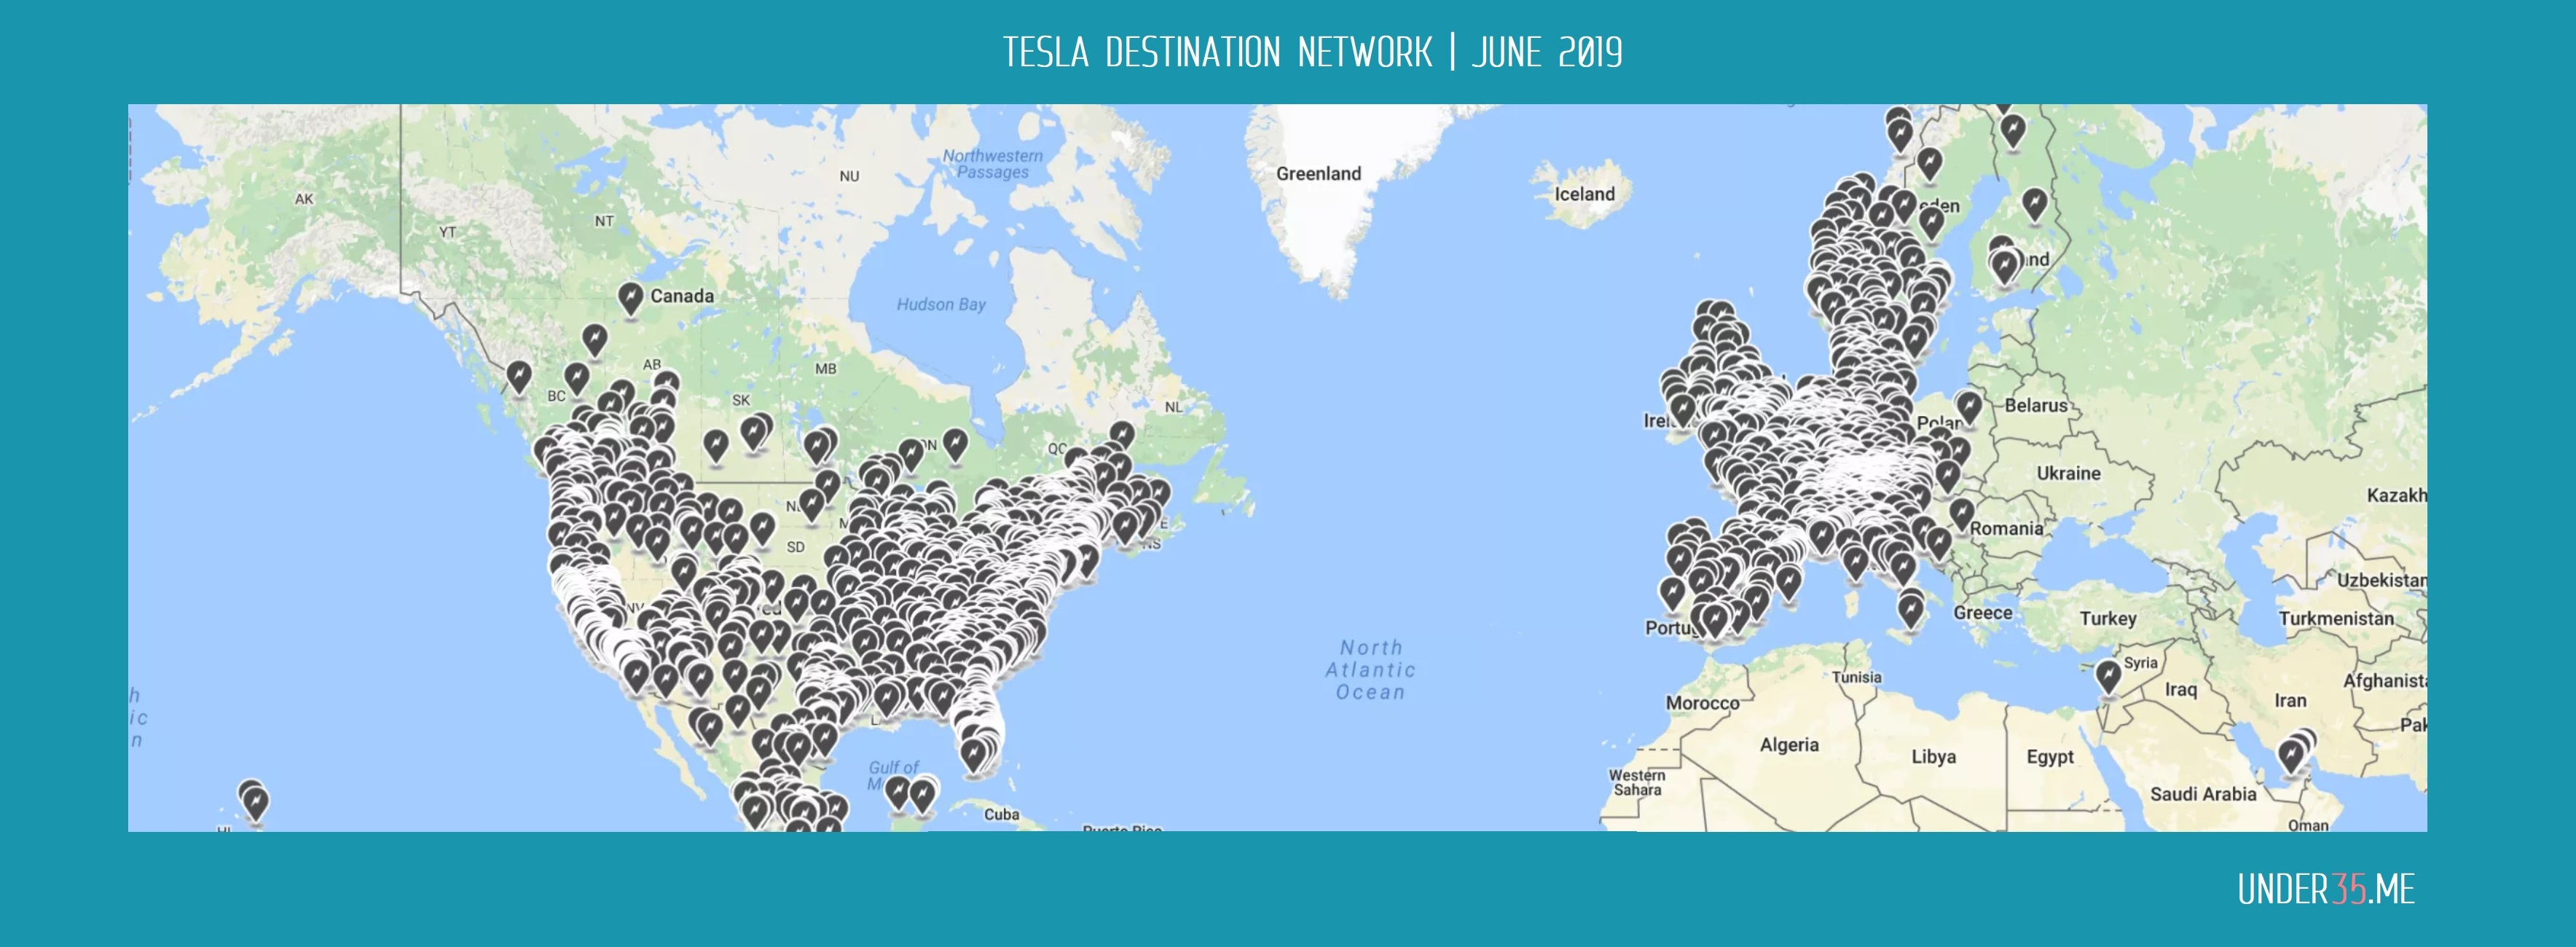 Tesla Destination Network map